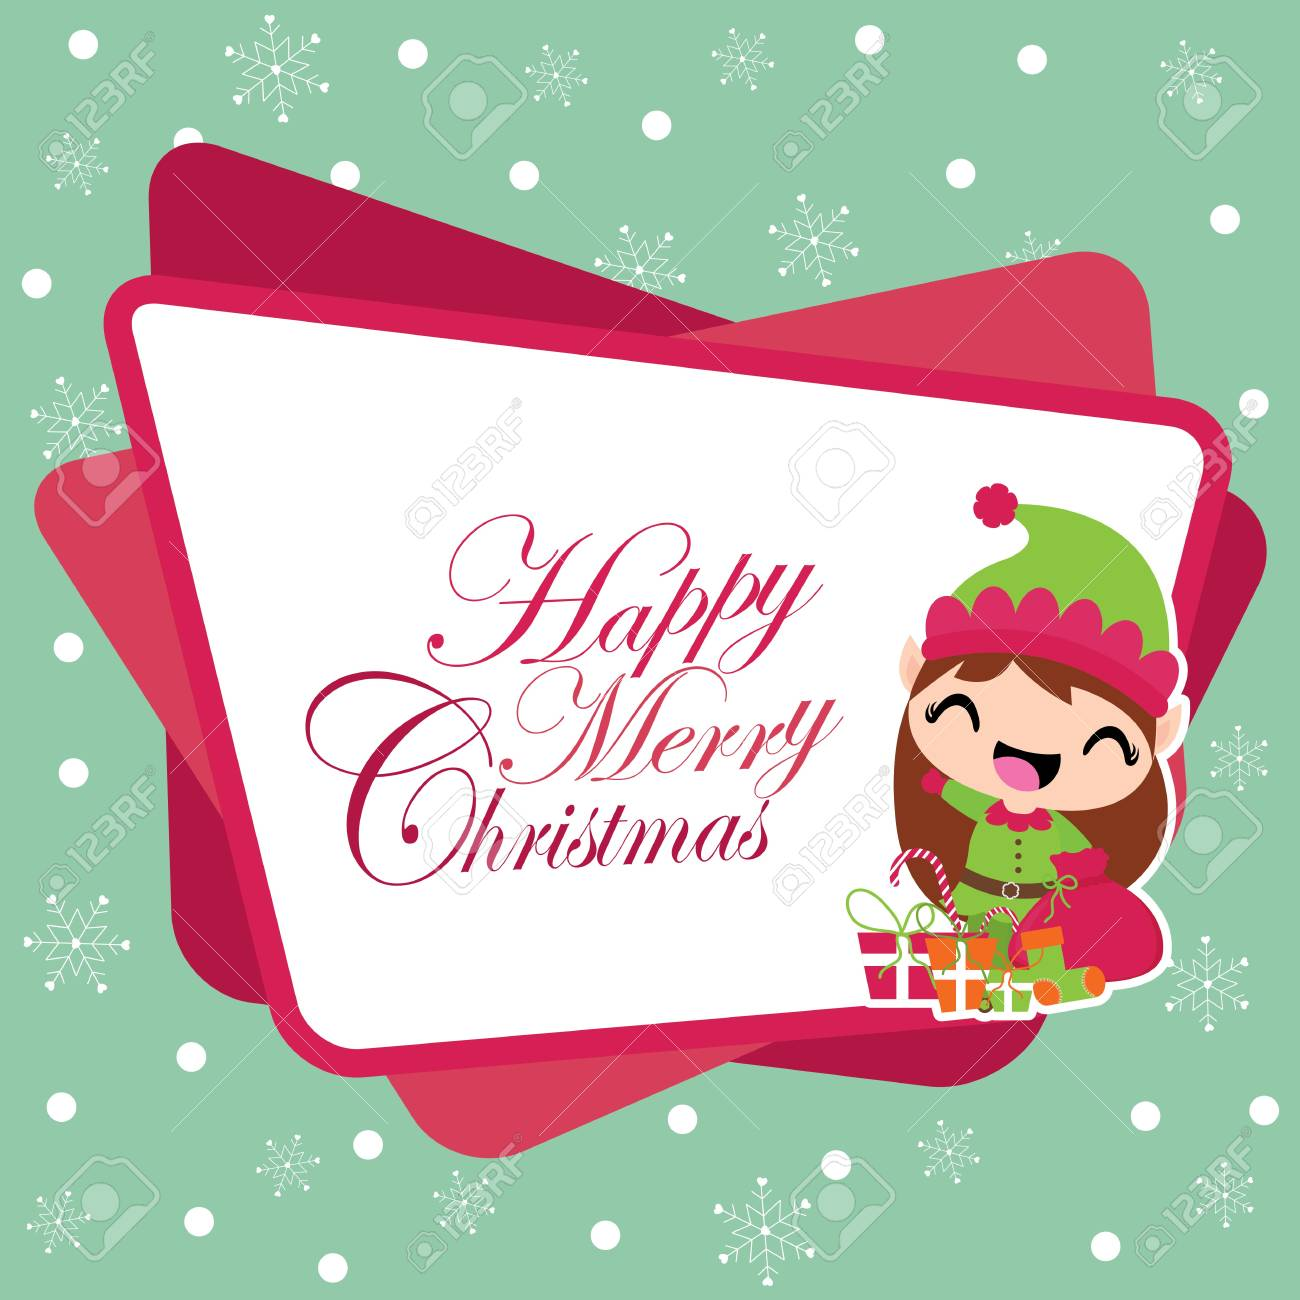 Elf Christmas Gift Bags.Cute Elf Girl With Xmas Gift Bag On Snowflakes Background Vector